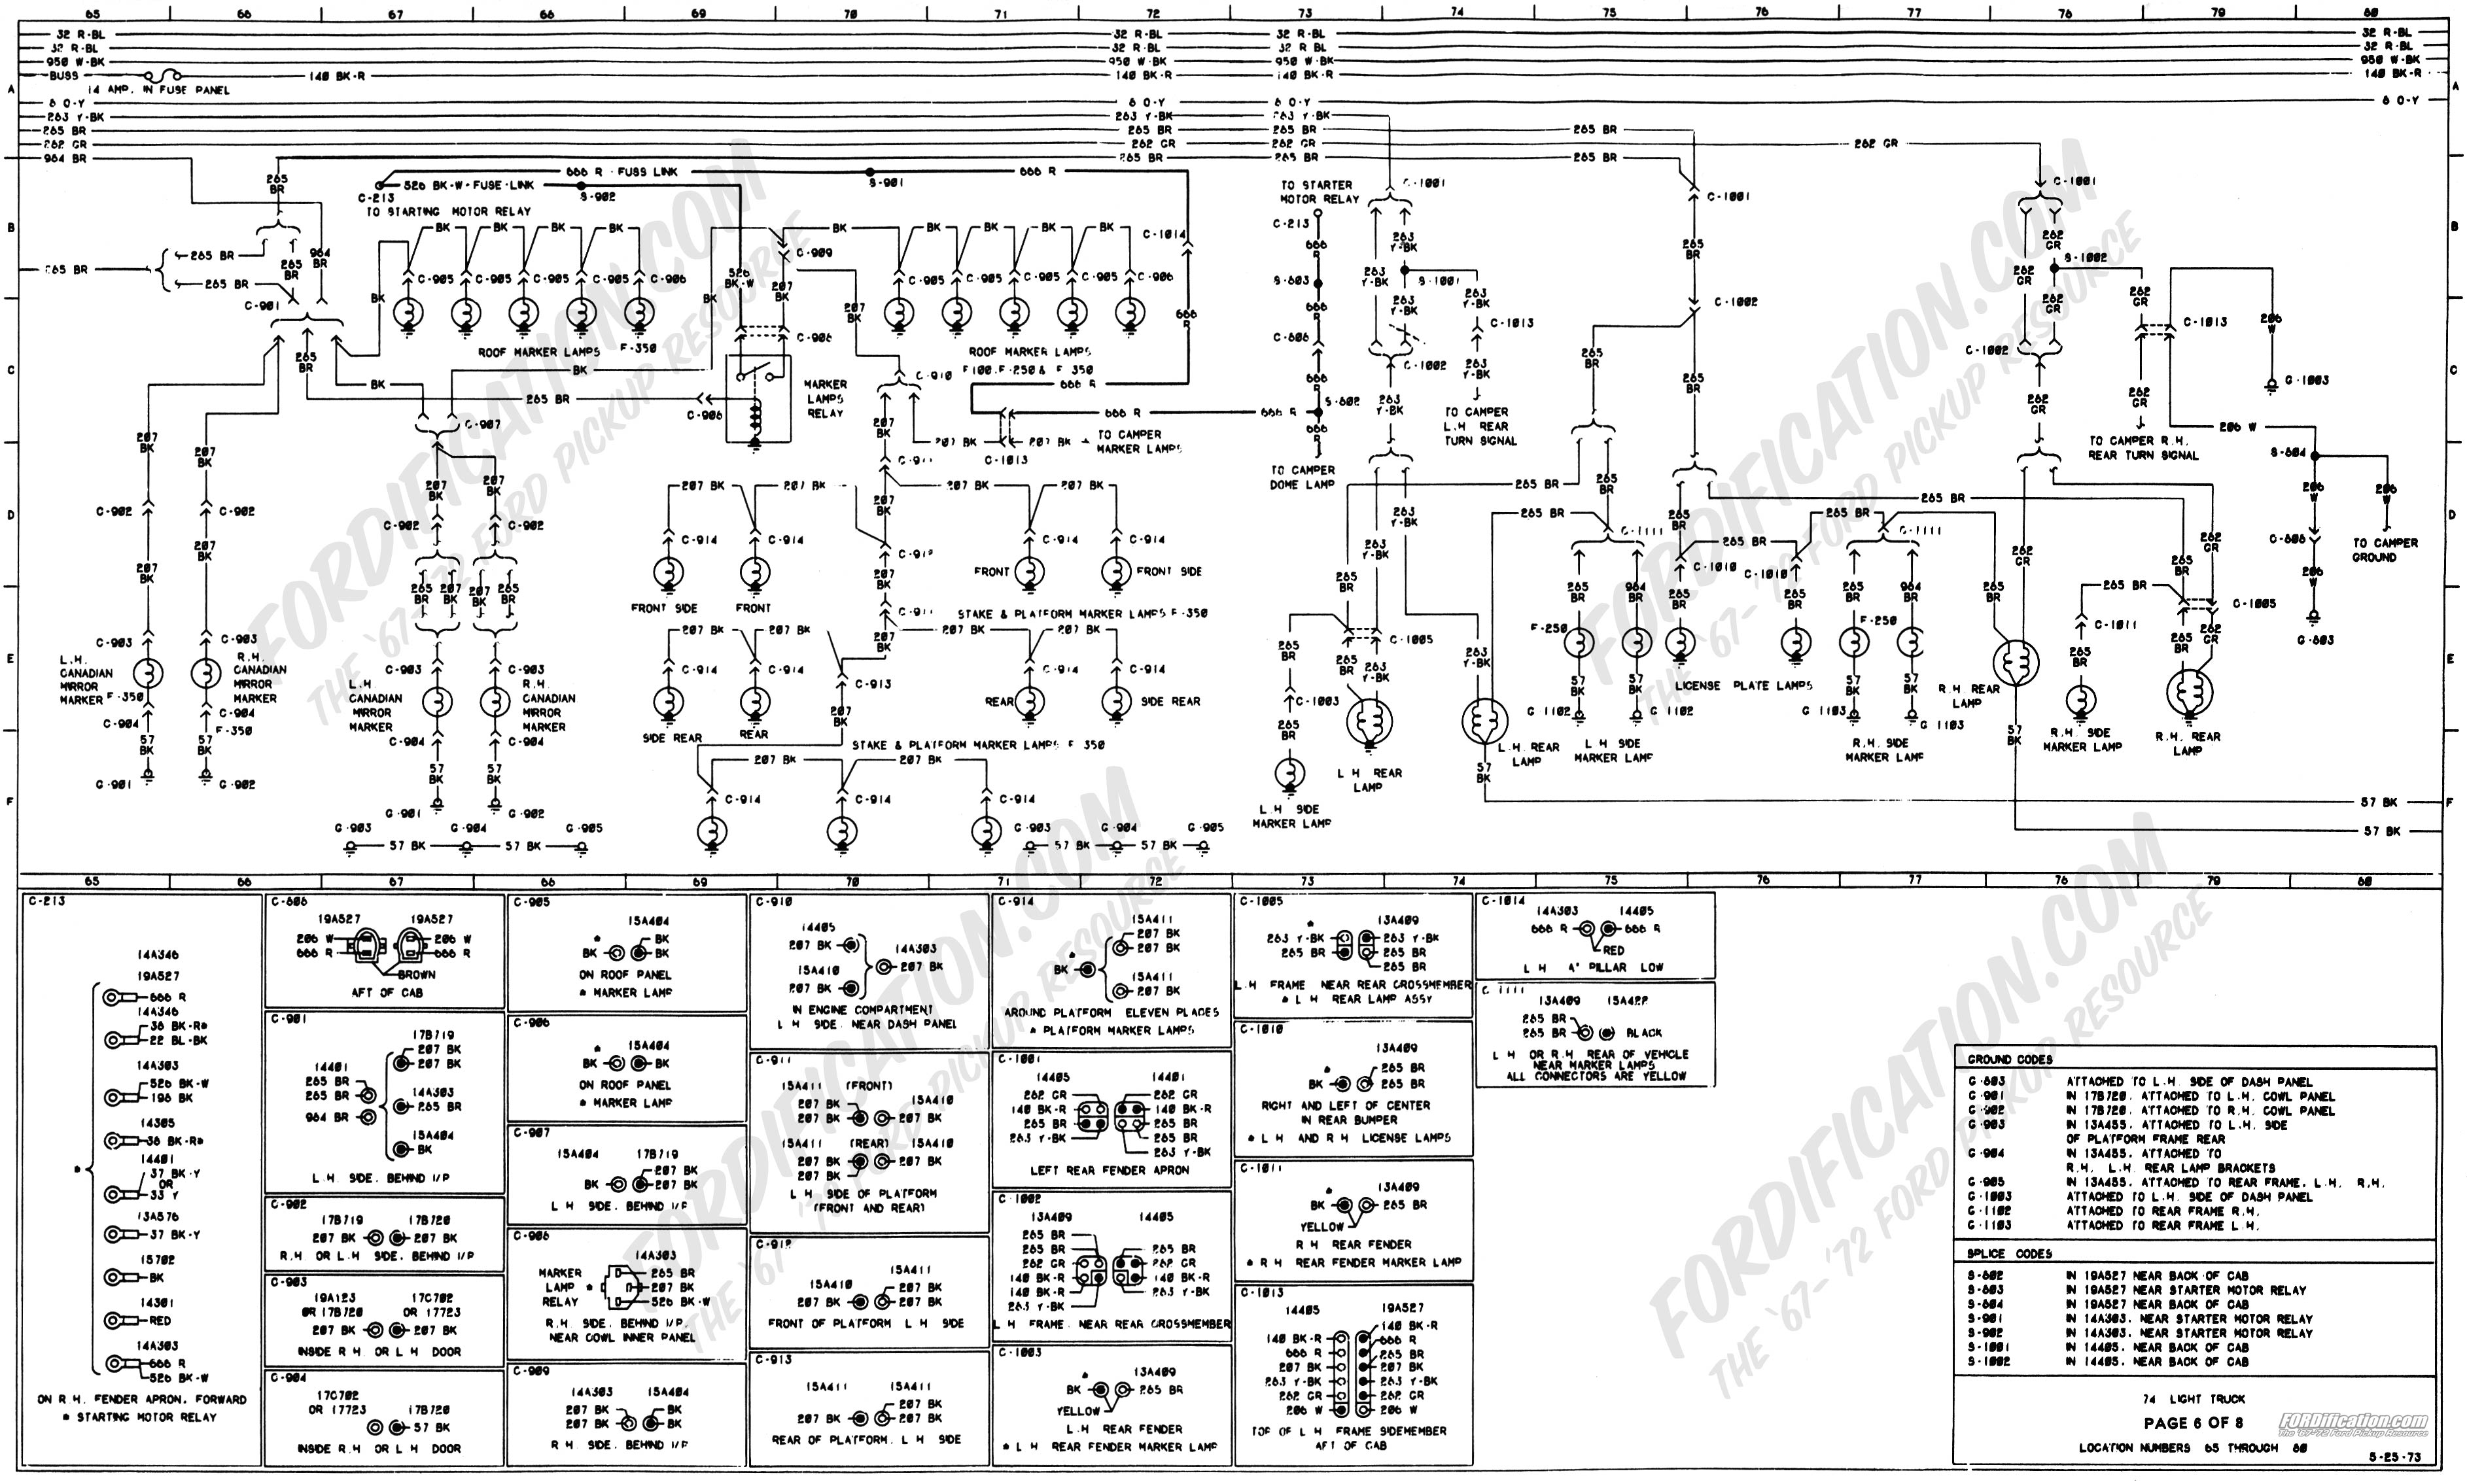 wiring_74master_6of8 1983 ford f150 wiring diagram f150 alternator wiring diagram Ford F-250 Trailer Wiring Diagram at honlapkeszites.co